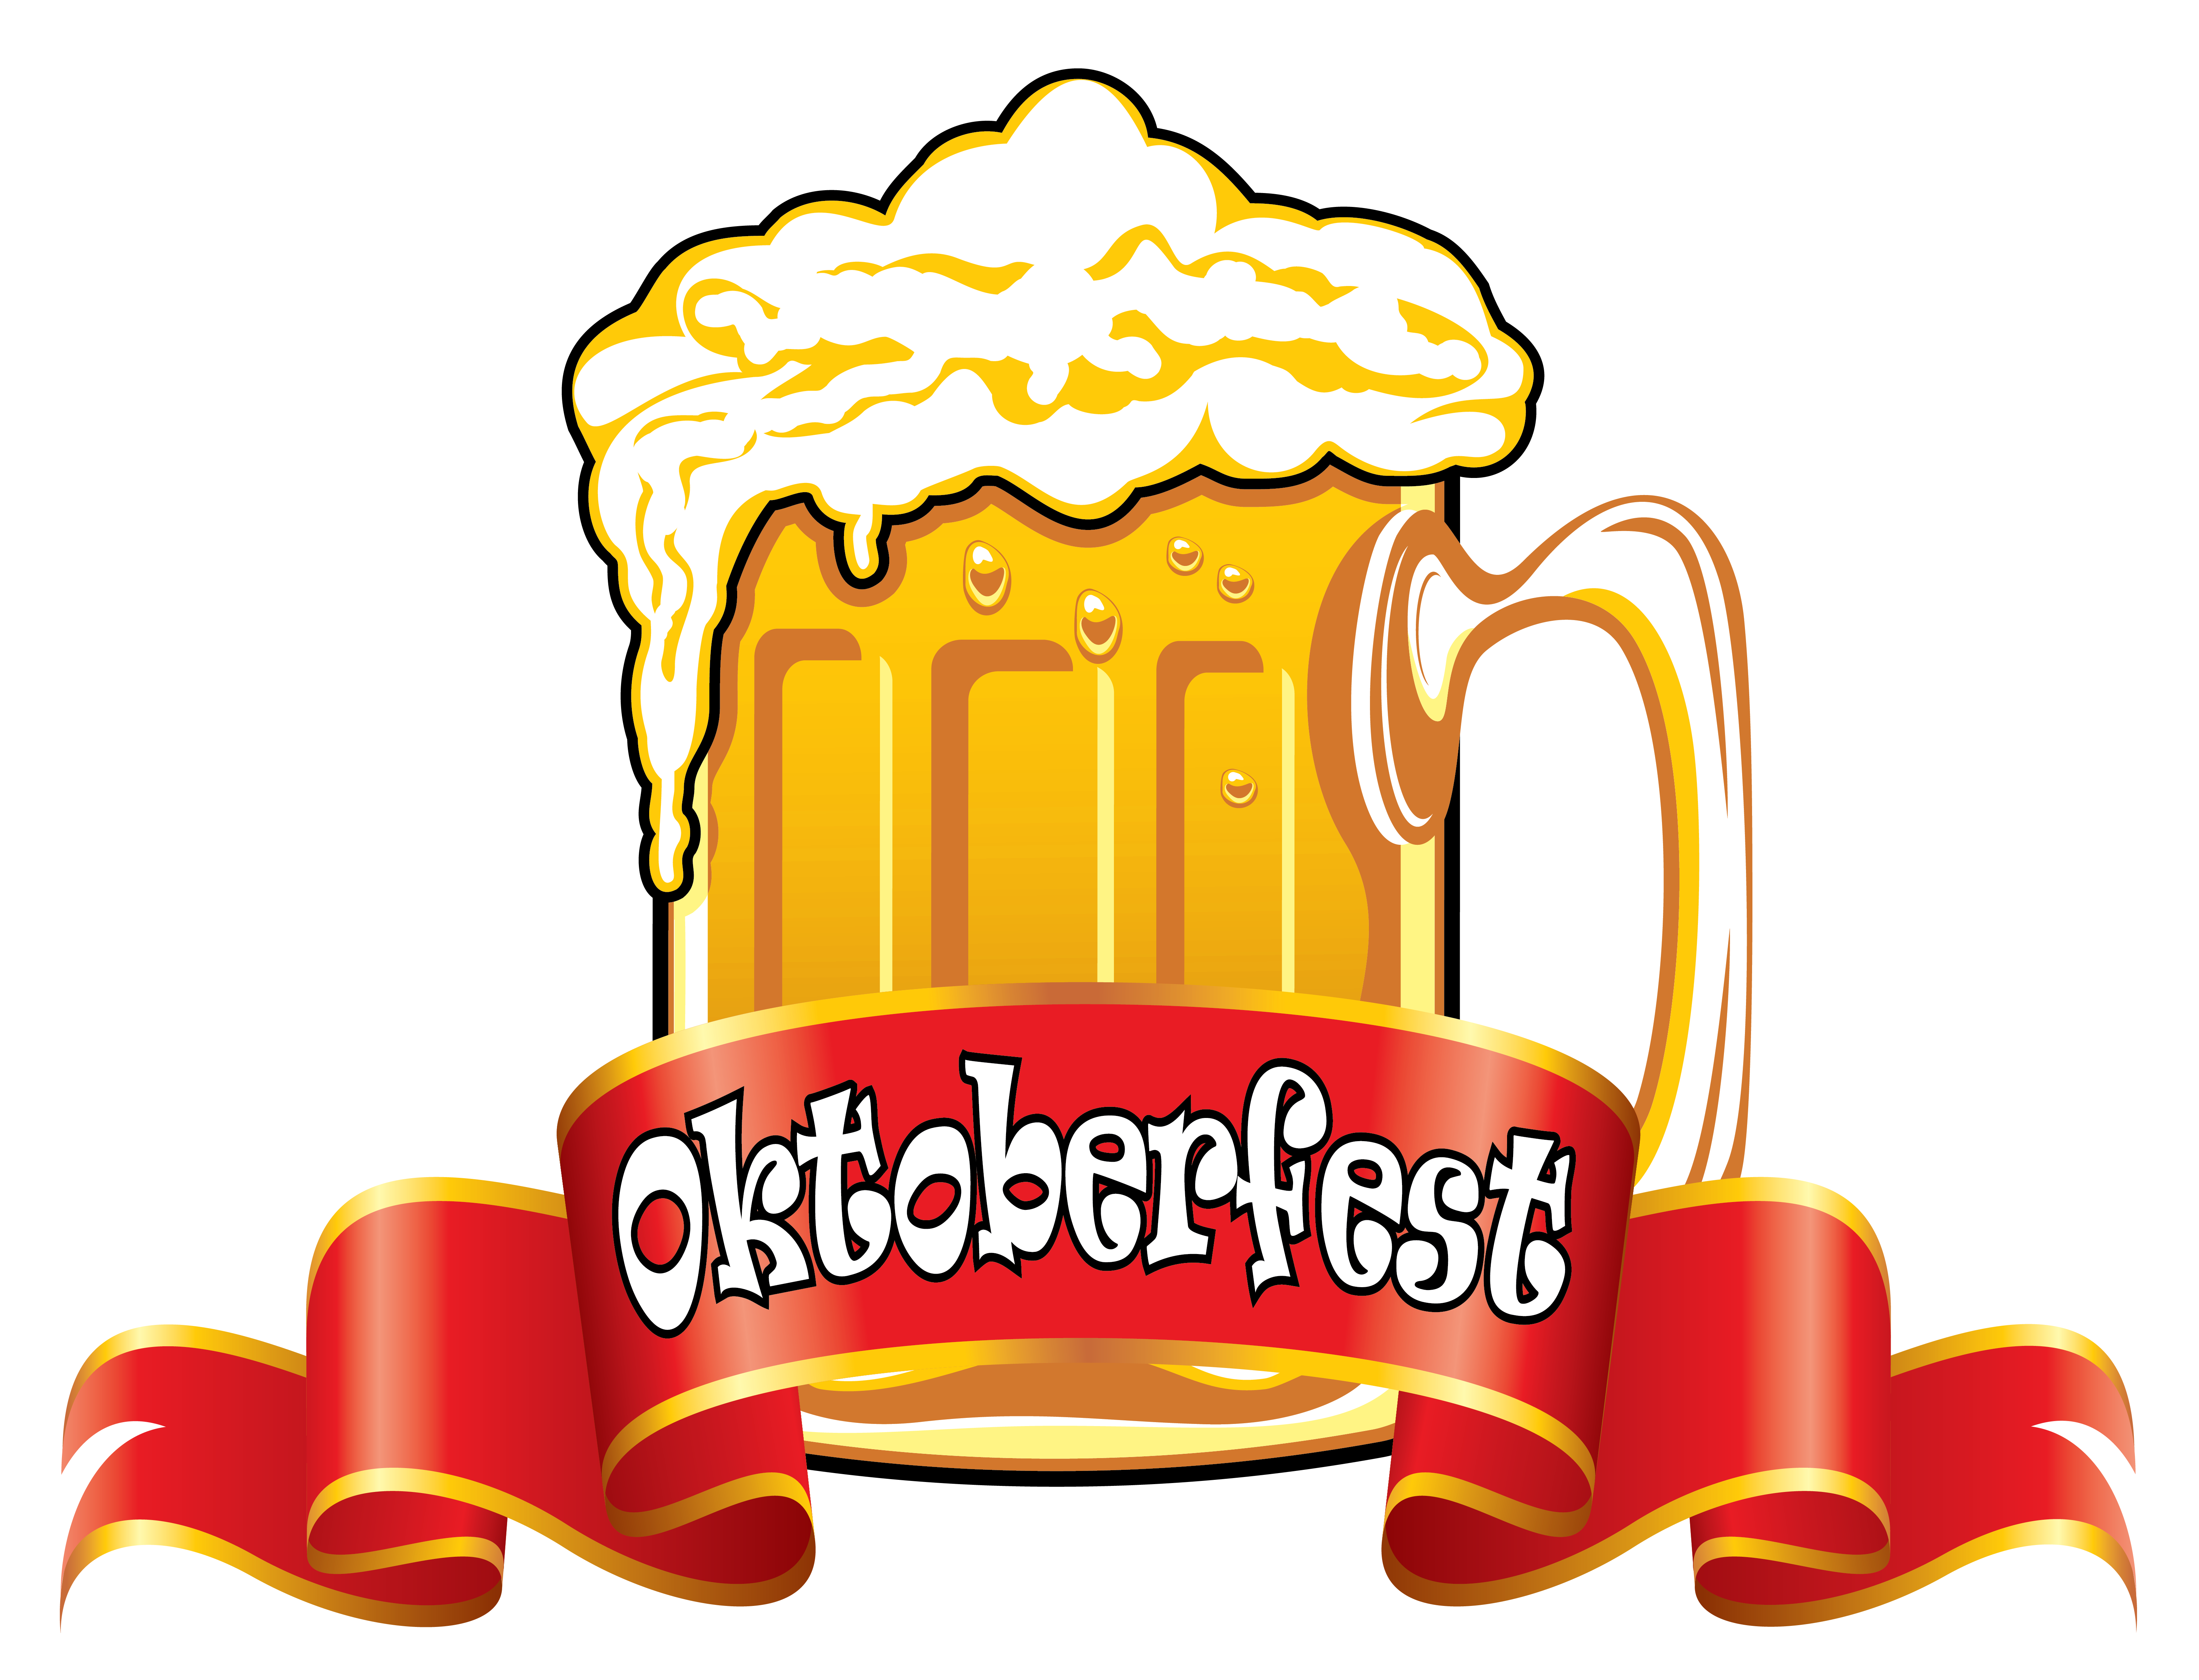 Oktoberfest clipart transparent. Red banner with beer